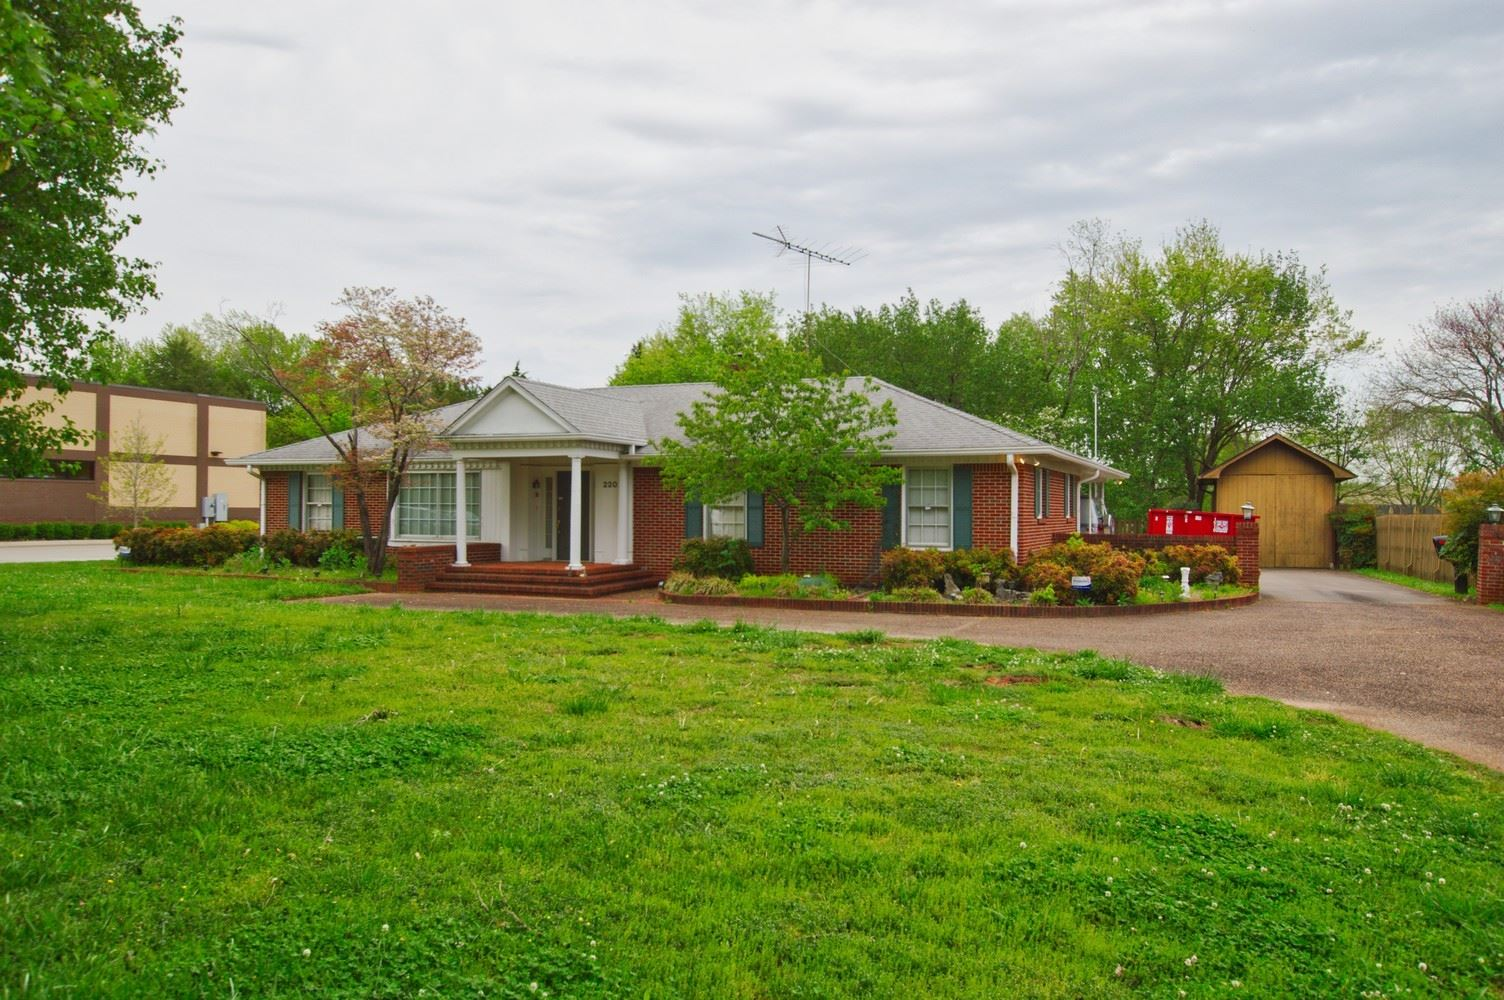 2202 Memorial Blvd, Murfreesboro, TN 37129 - MLS#: 2243506